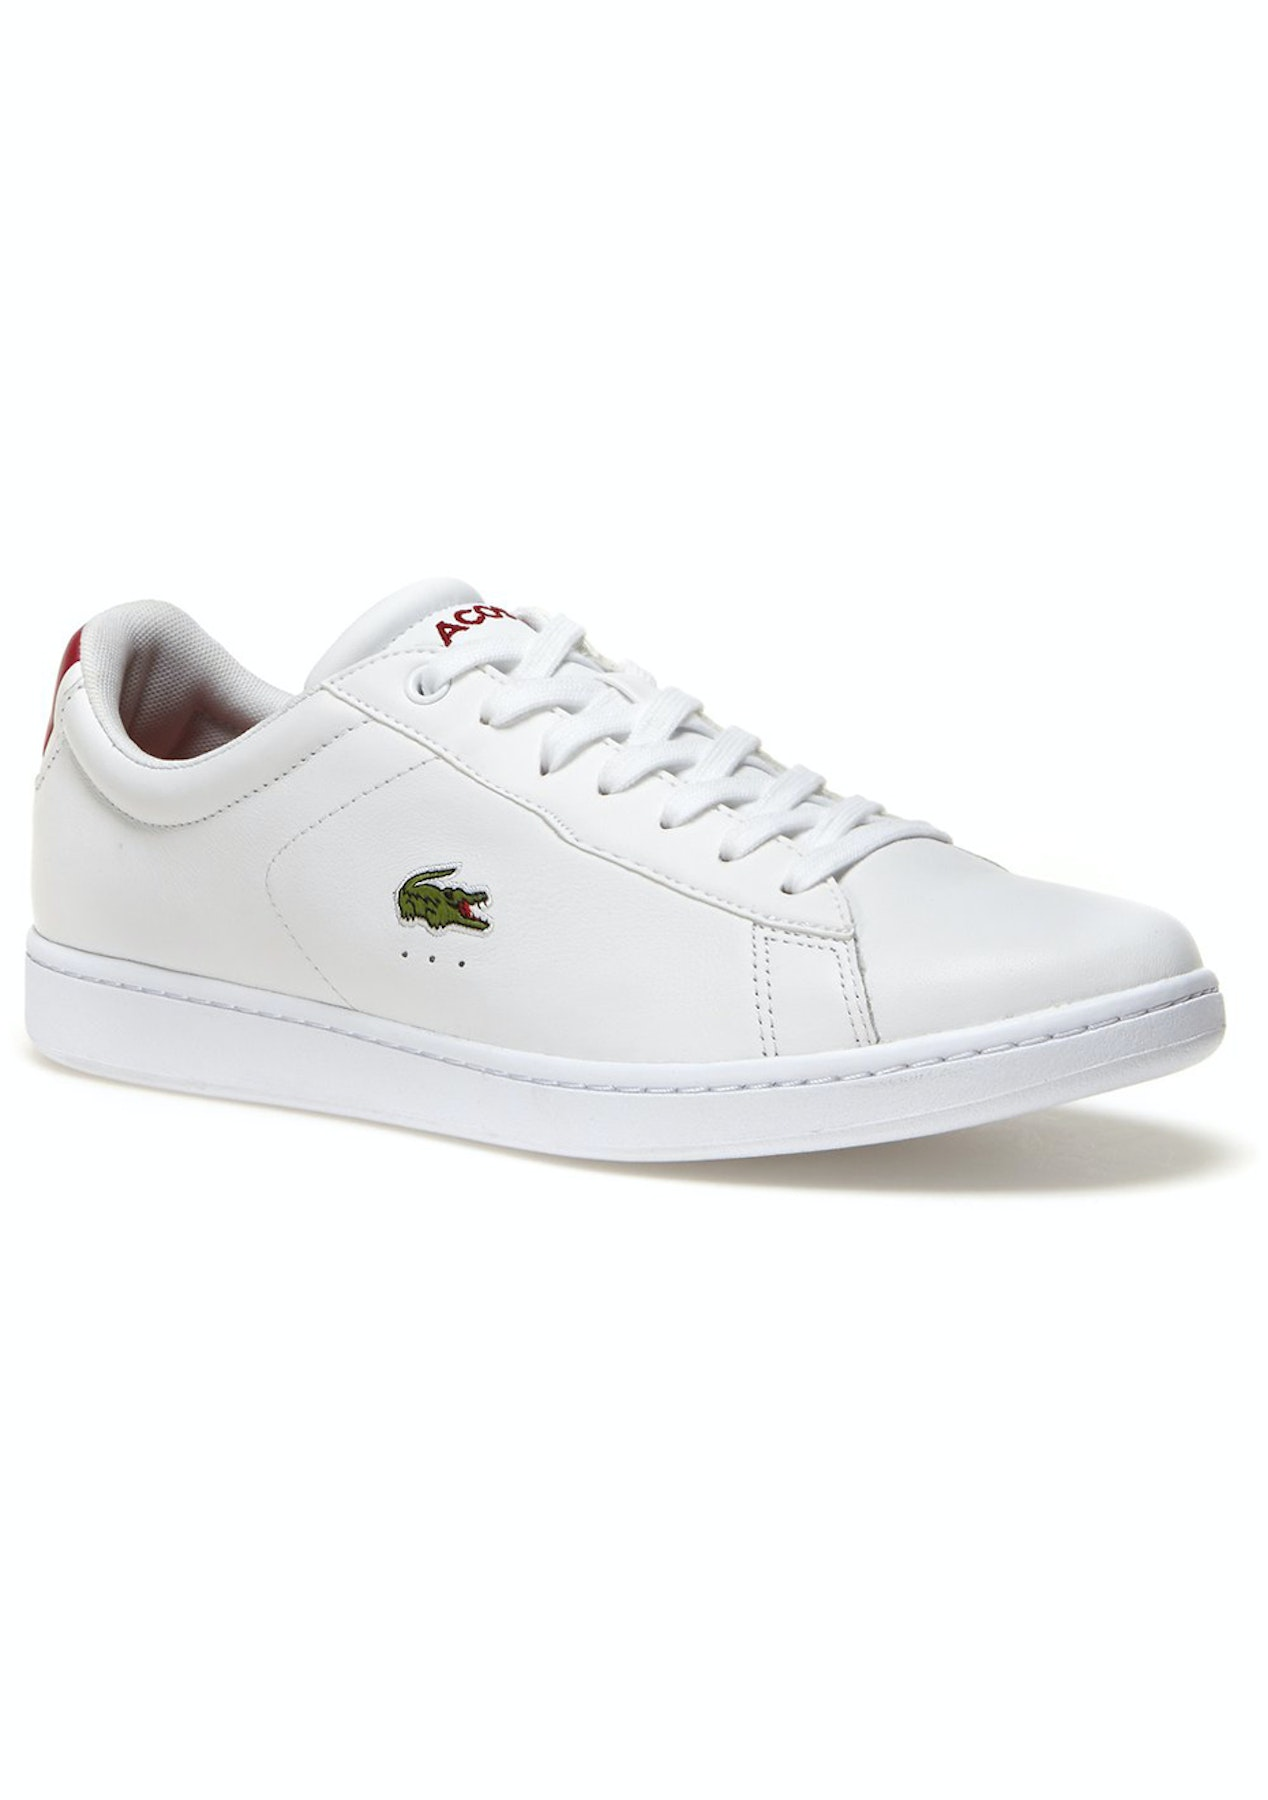 c4a592e8864b Mens Lacoste - Carnaby Evo S216 2 Spm - White Red - Mens Shoe Sale - Onceit